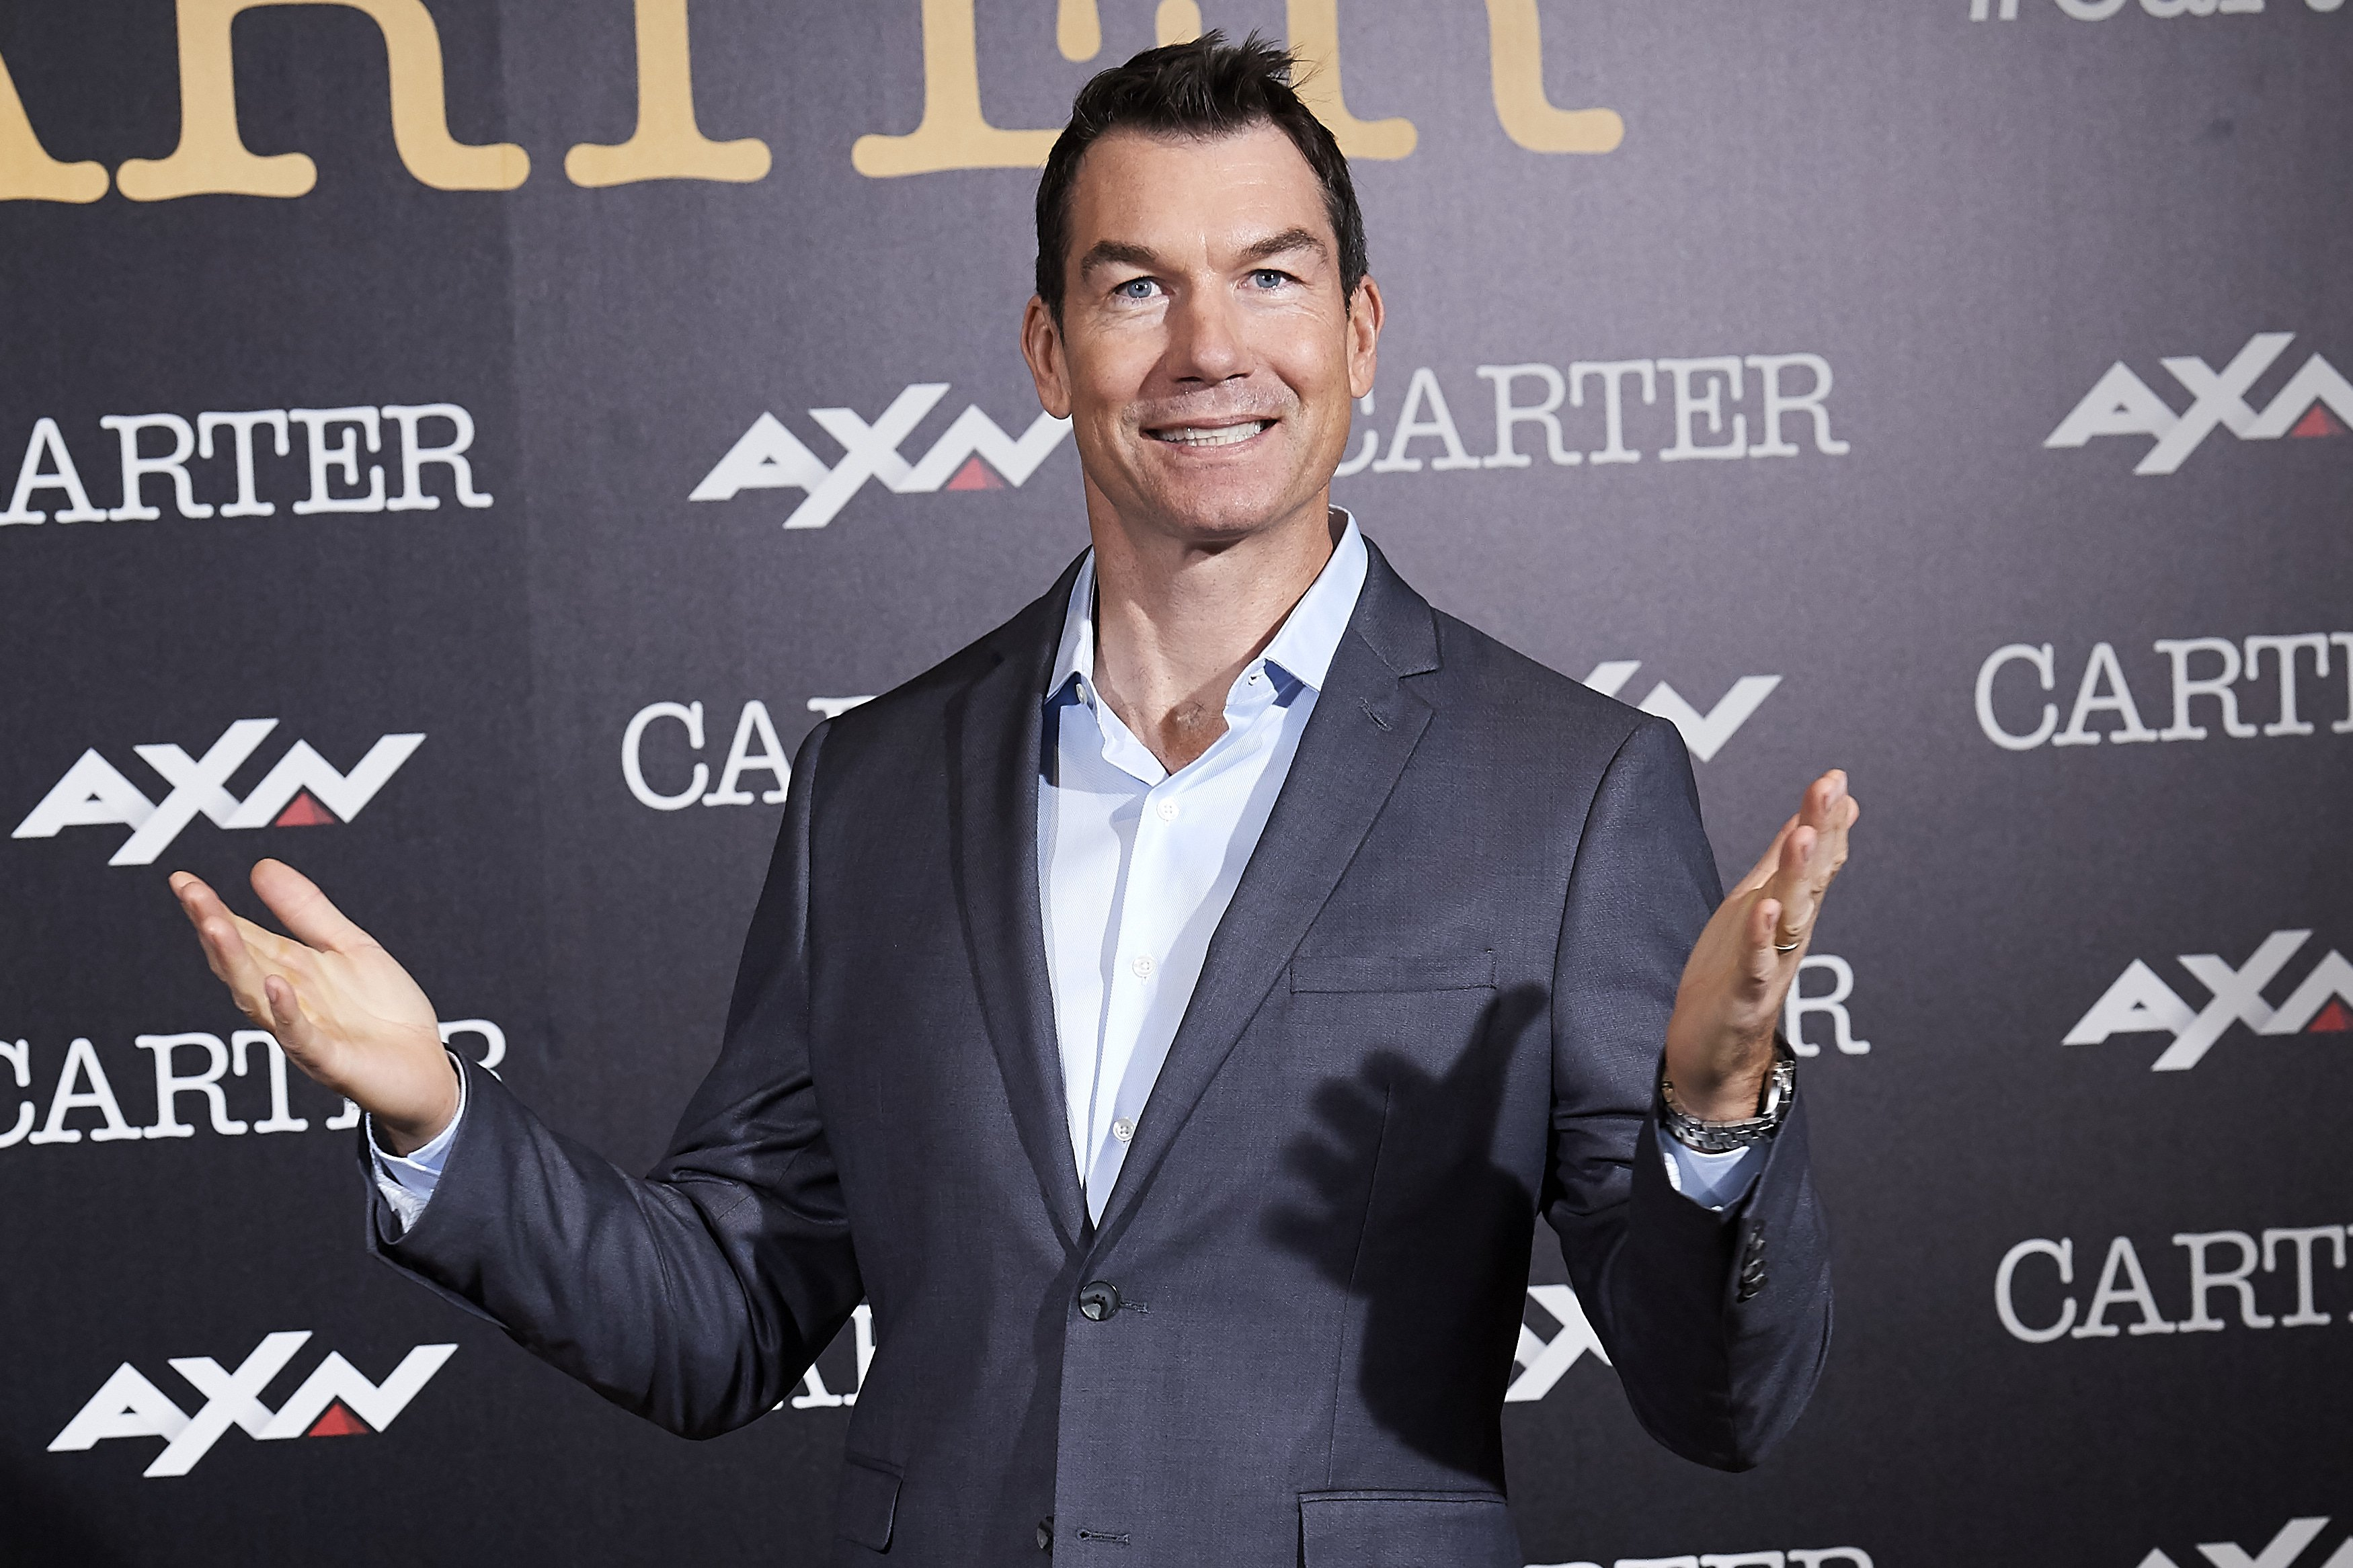 Actor Jerry O'Connell during a broadway event in 2019. | Photo: Getty Images